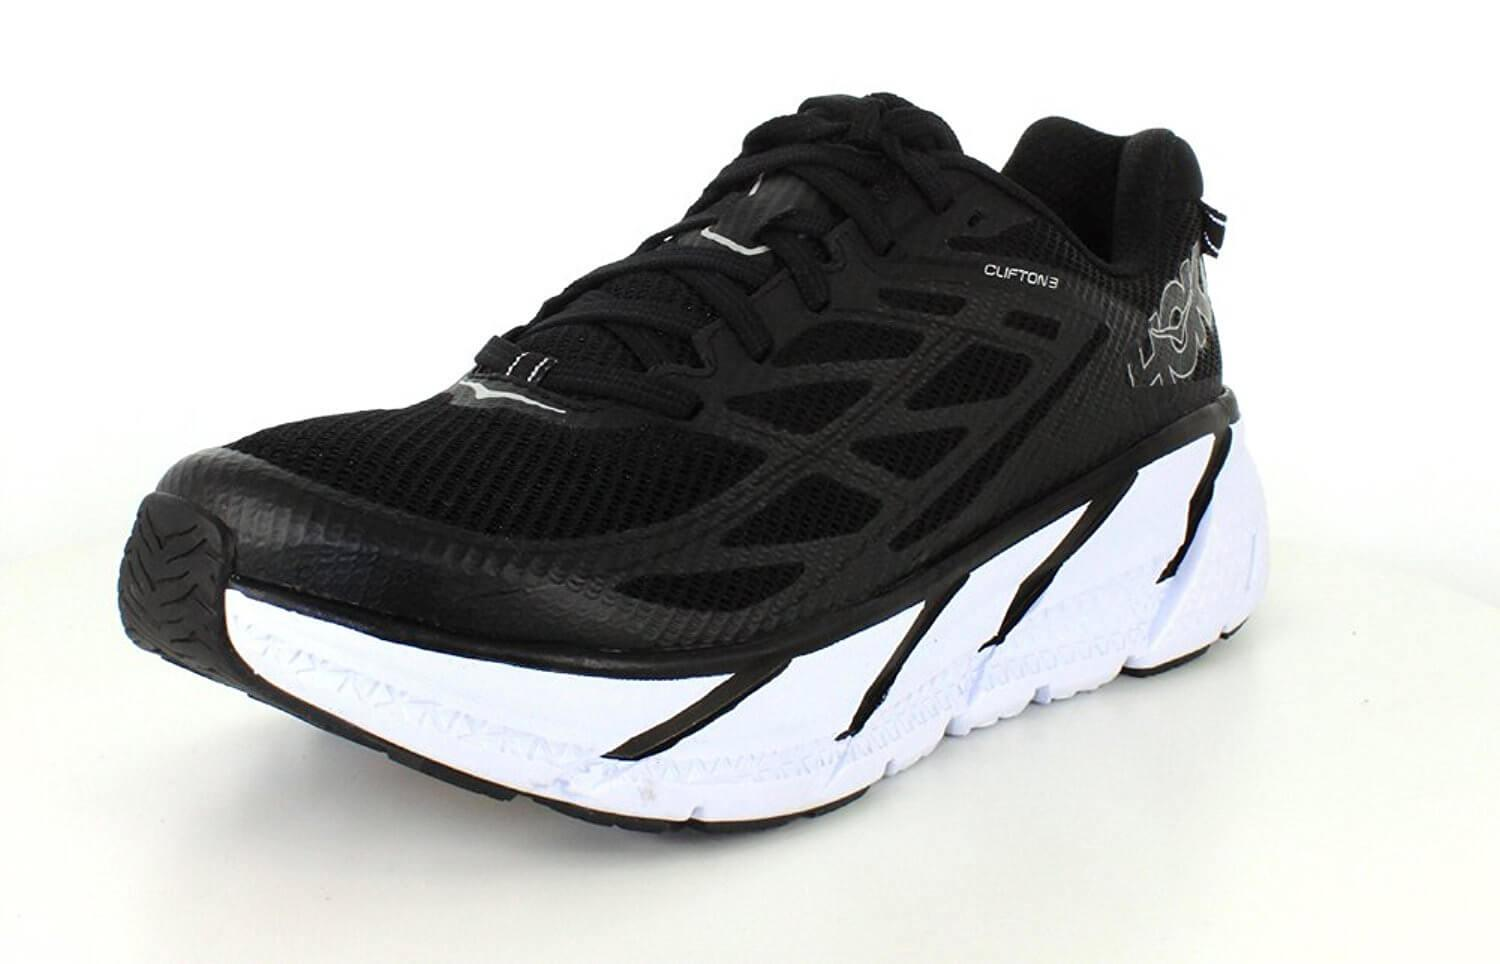 Best Running Shoes To Prevent Shin Pain